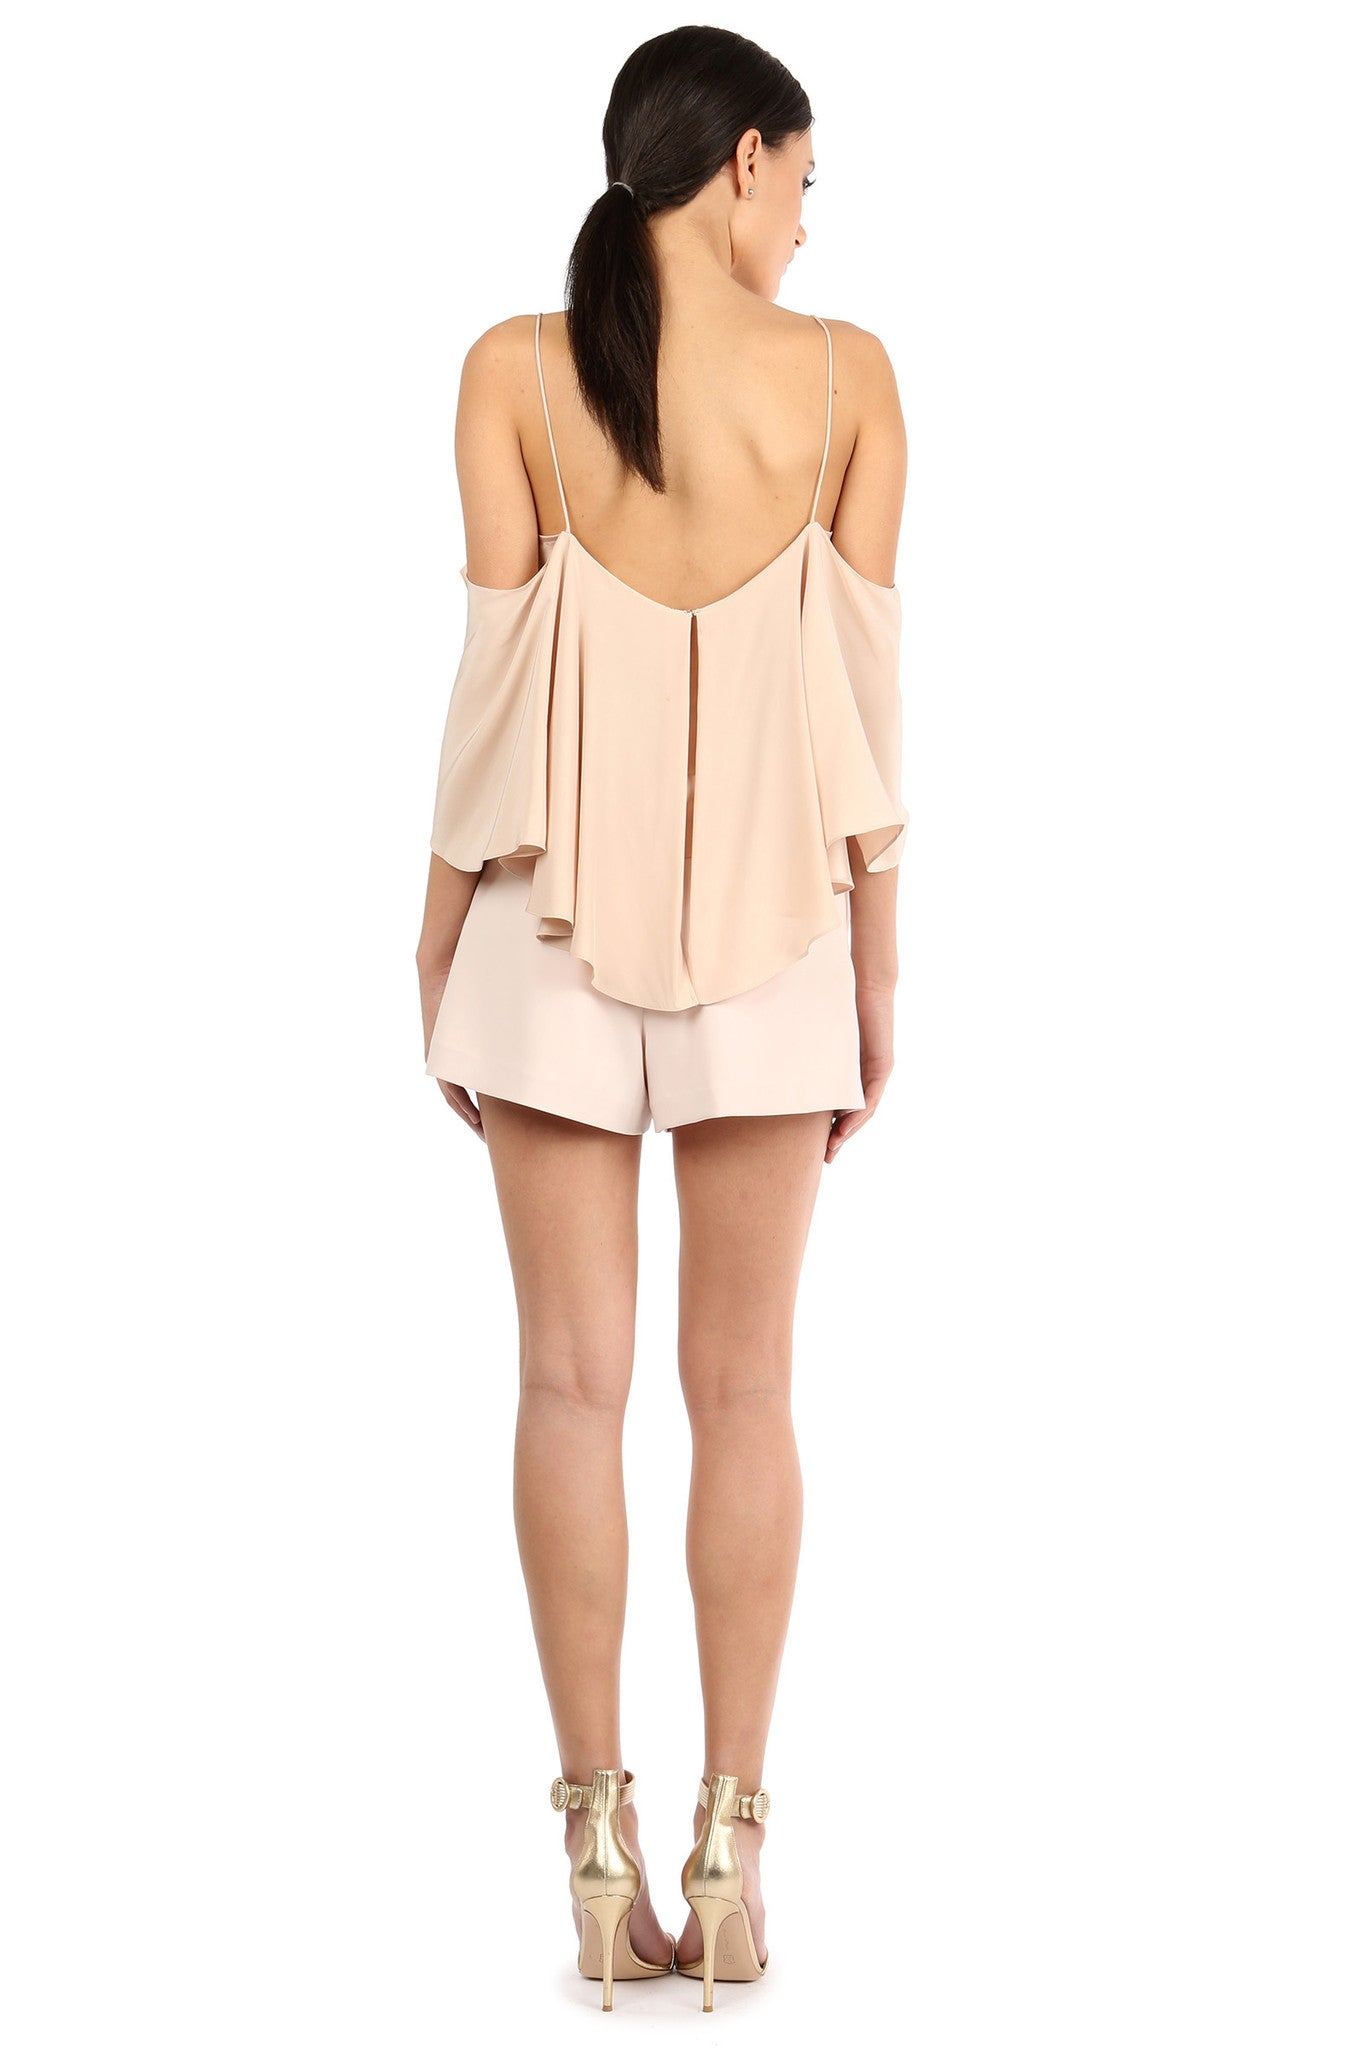 Jay Godfrey Sand Flowy Off-the-Shoulder Top - Back View